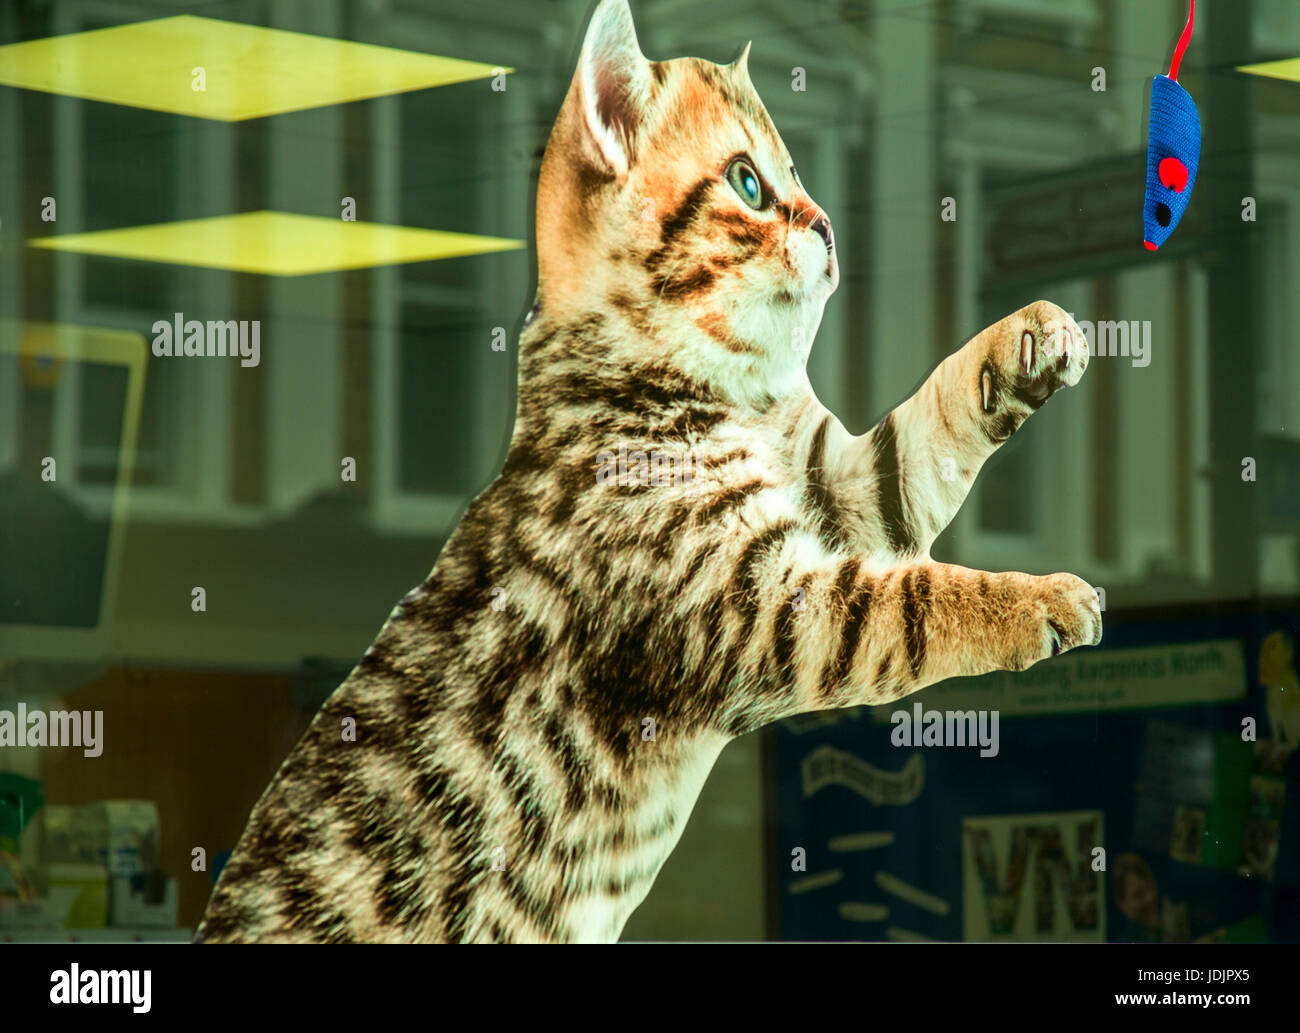 cat mouse cat in pet stockfotos cat mouse cat in pet bilder alamy. Black Bedroom Furniture Sets. Home Design Ideas